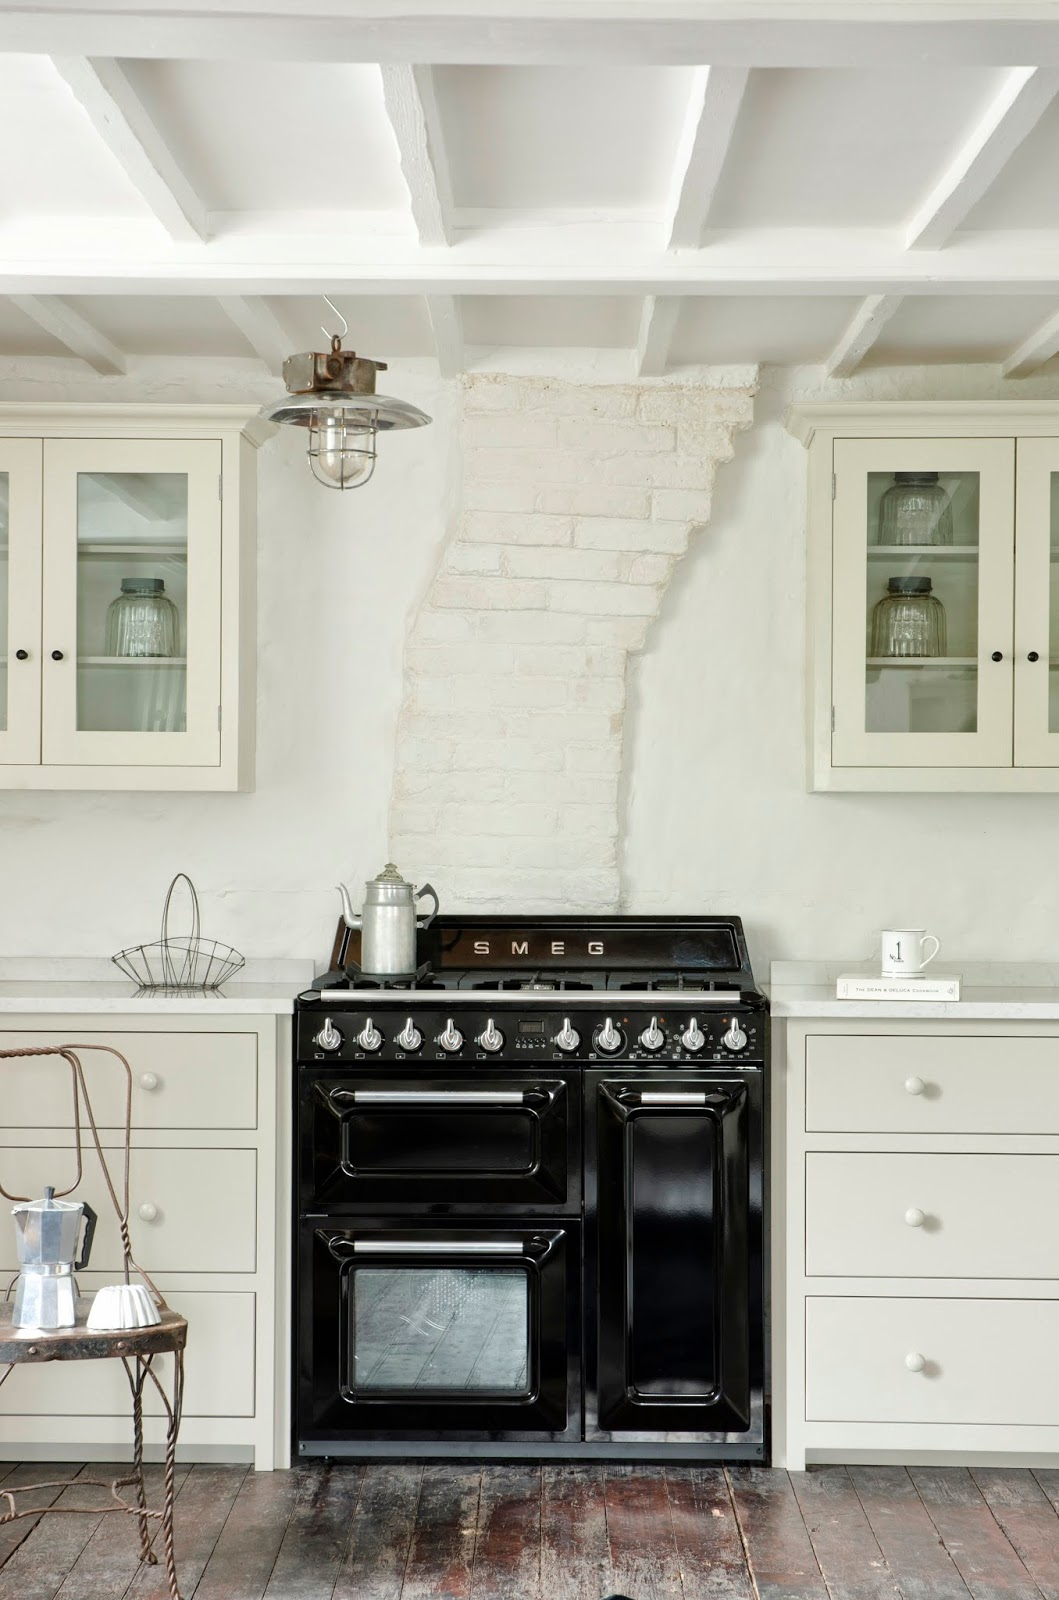 Range Style Cookers >> Modern Country Style: Modern Country Loves: Smeg Victoria Range Cooker